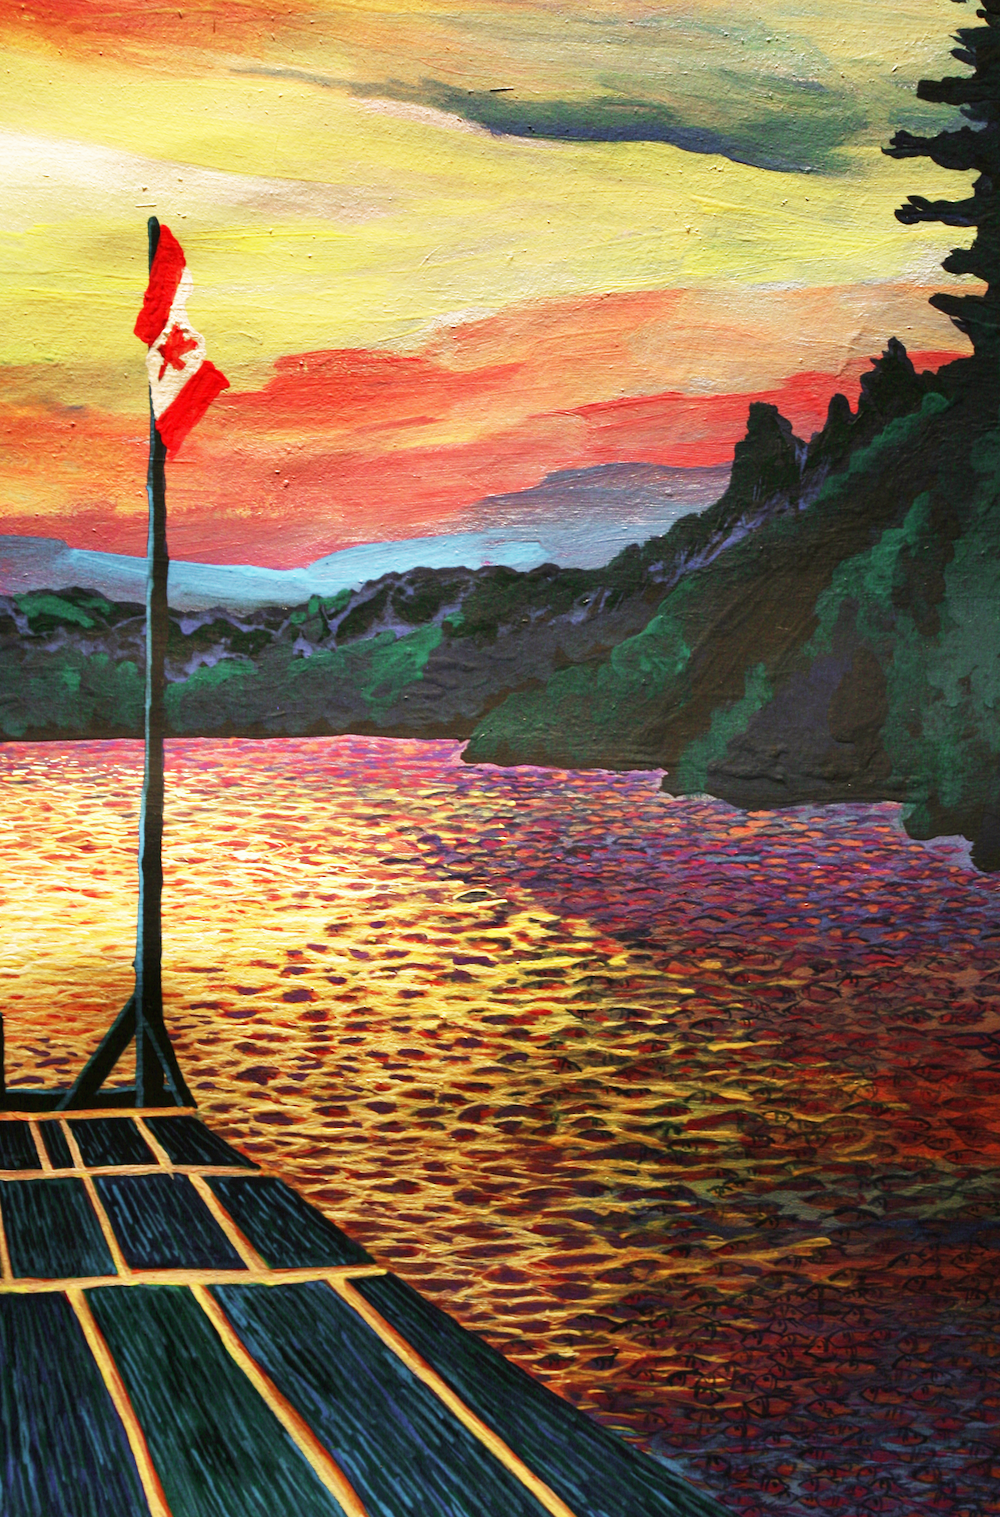 Laurentian View Resort - Cottage 1 Dock - original painting using acrylic  by freelance cork artist, web site designer and developer